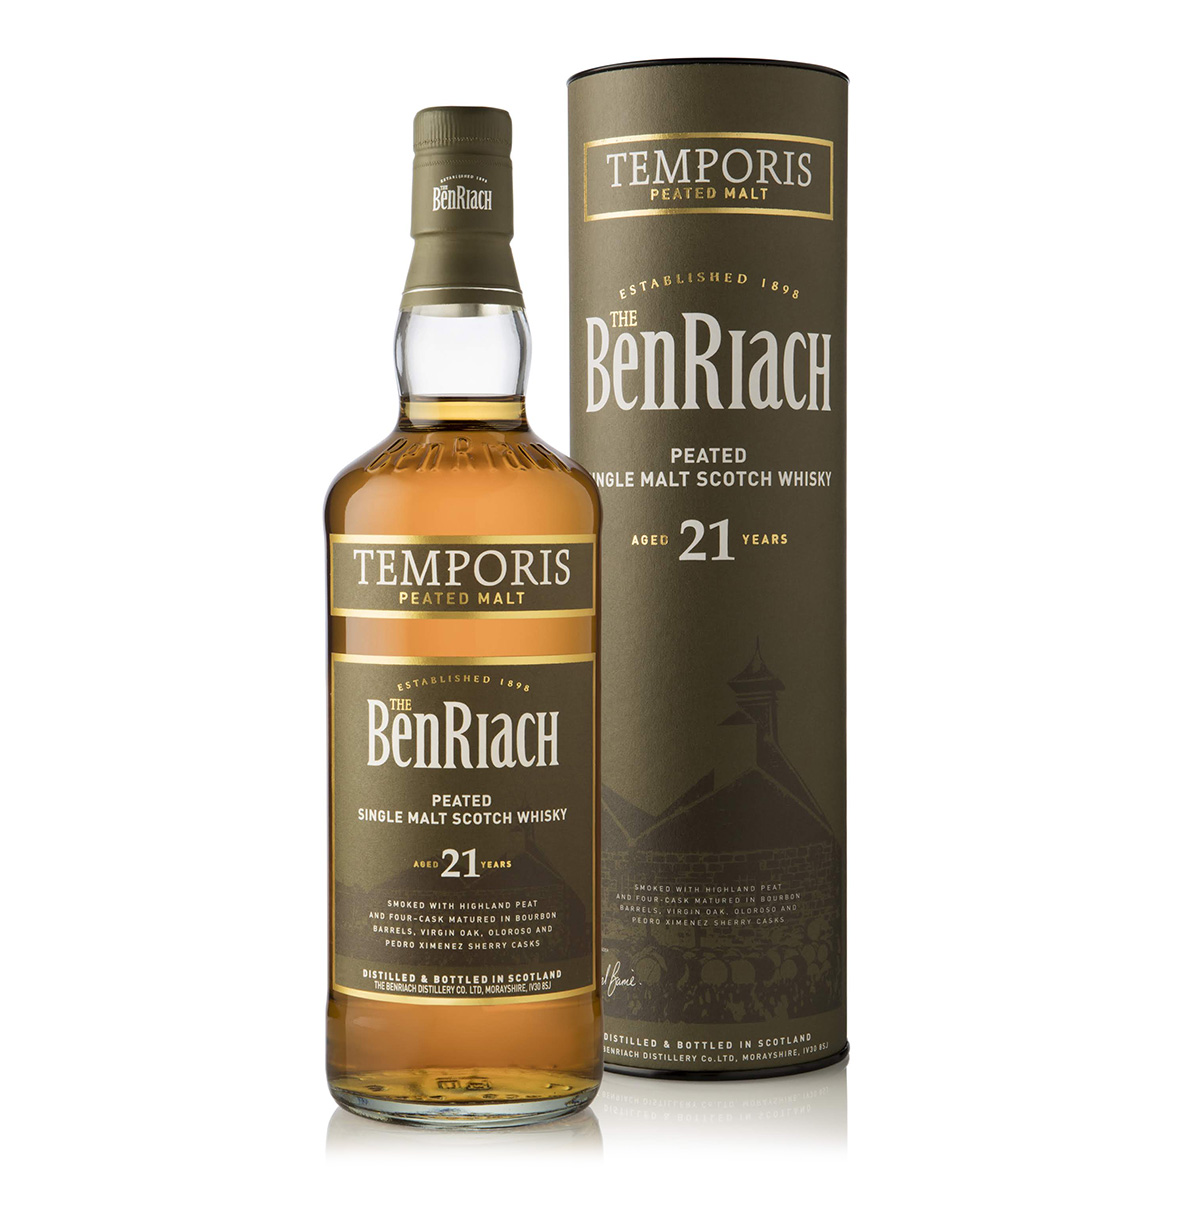 BenRiach Temporis 21 Year Old Peated